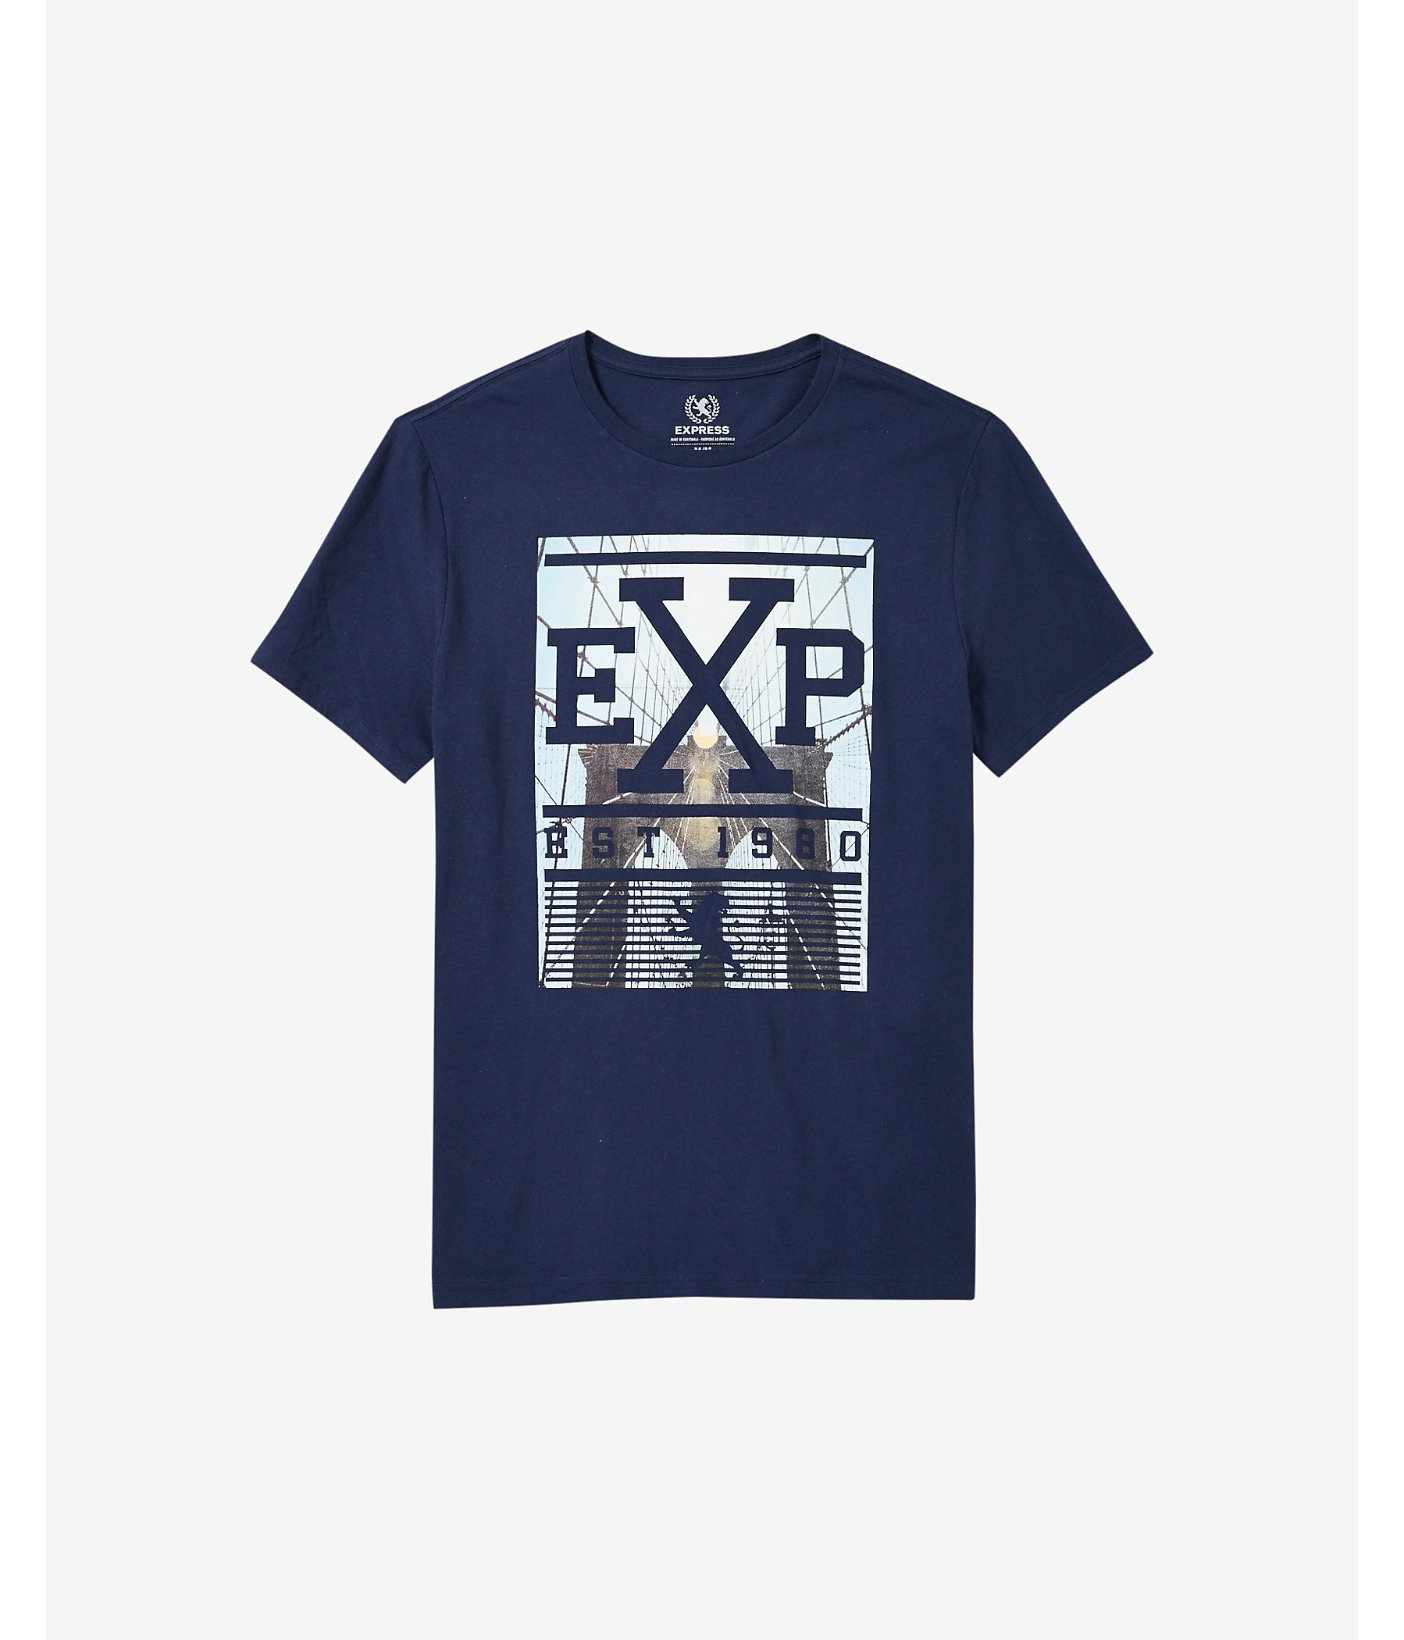 Express Navy Exp Bridge Graphic T Shirt In Blue For Men Lyst